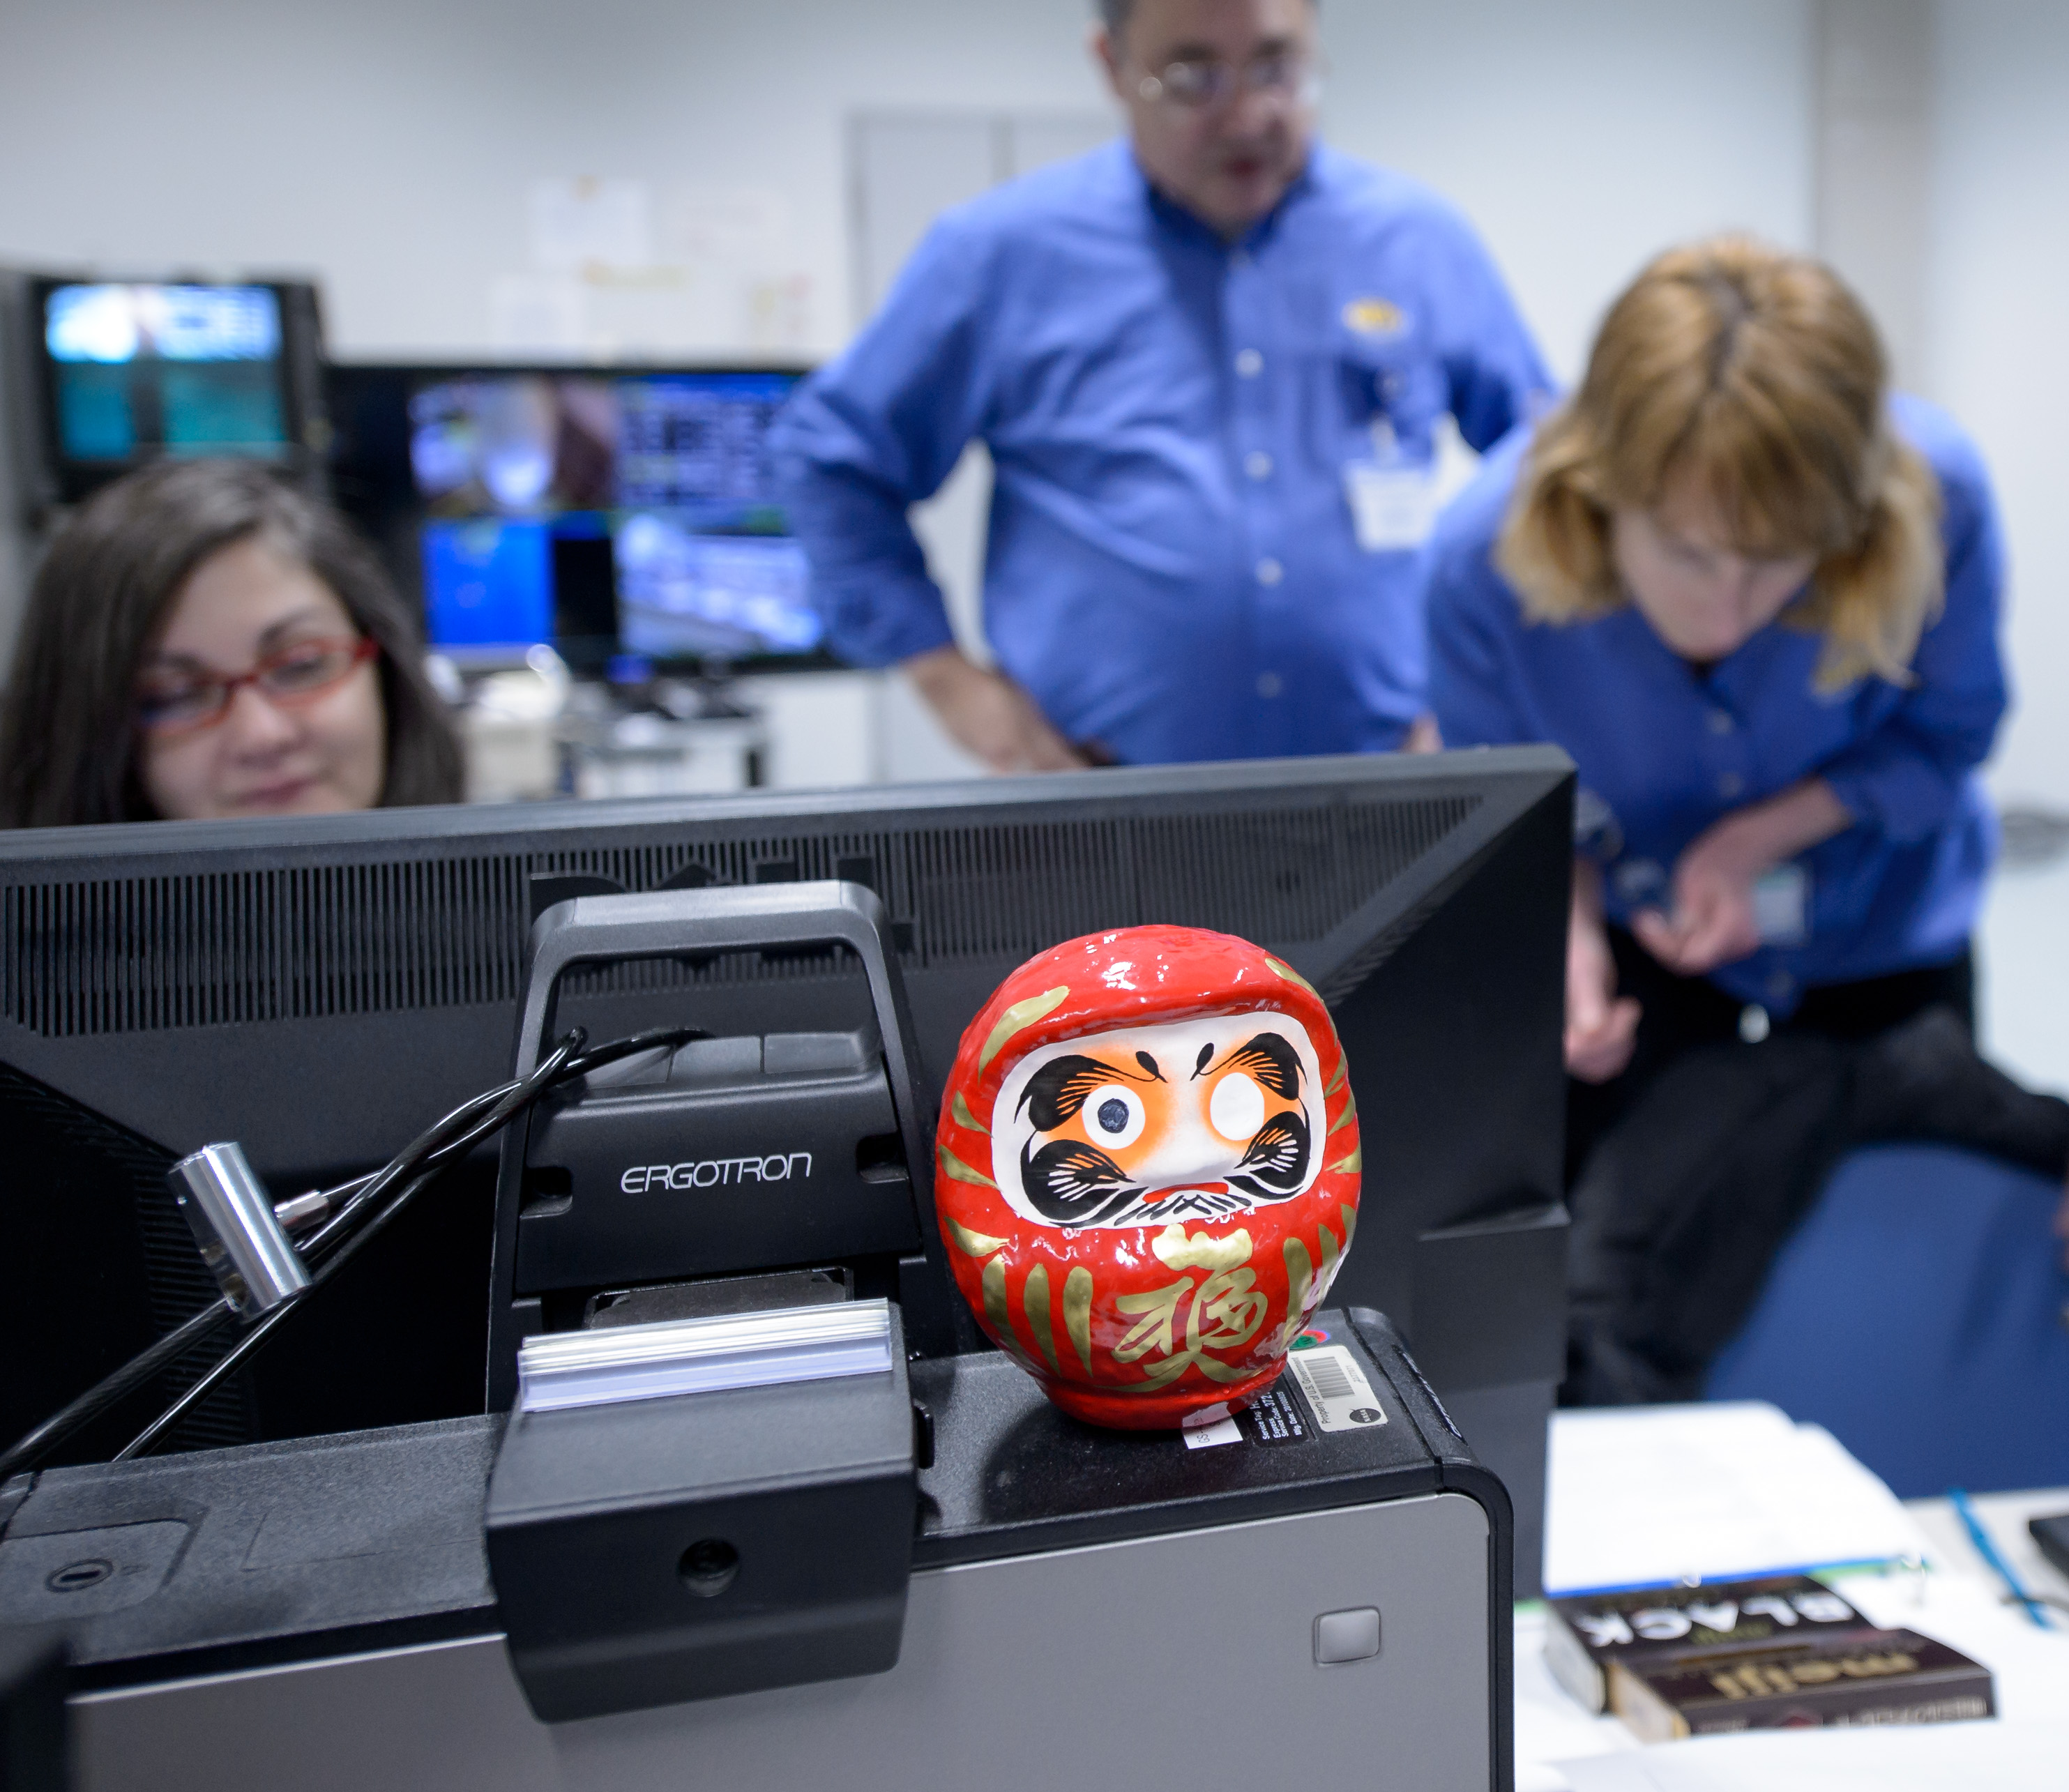 Daruma Doll at GPM Launch Simulation